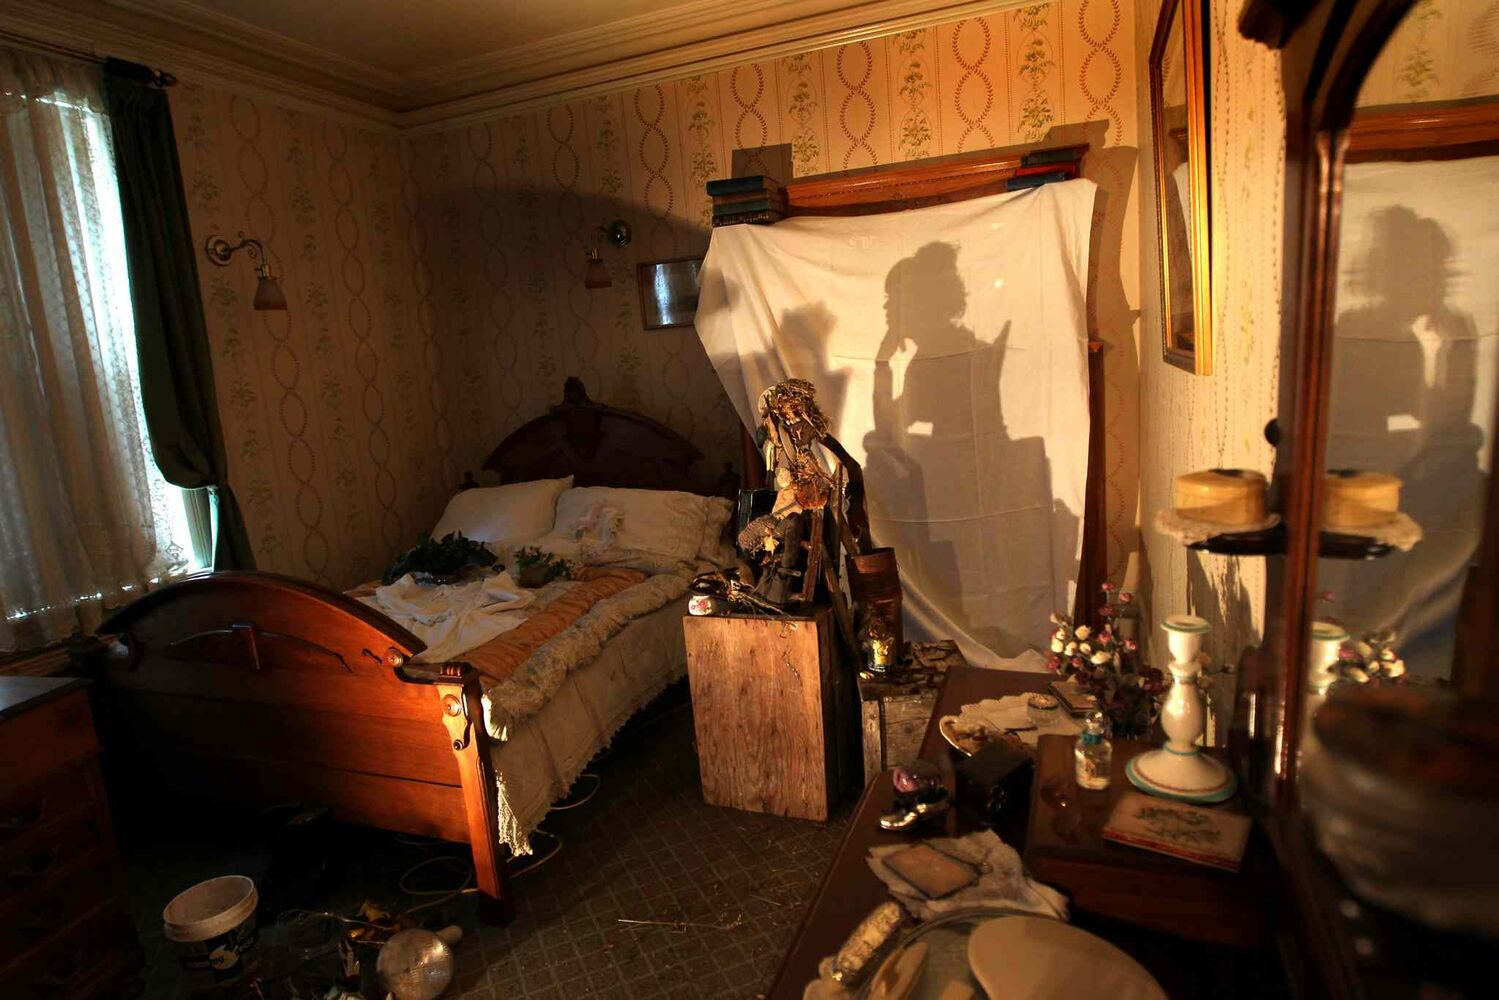 In this 2010 photo, Helga Jakobson's Shadow Play is displayed at Dalnavert Museum as part of Phantasmagoria, a spooky, ghostly show with various artist exhibits showcased in different rooms throughout the house.